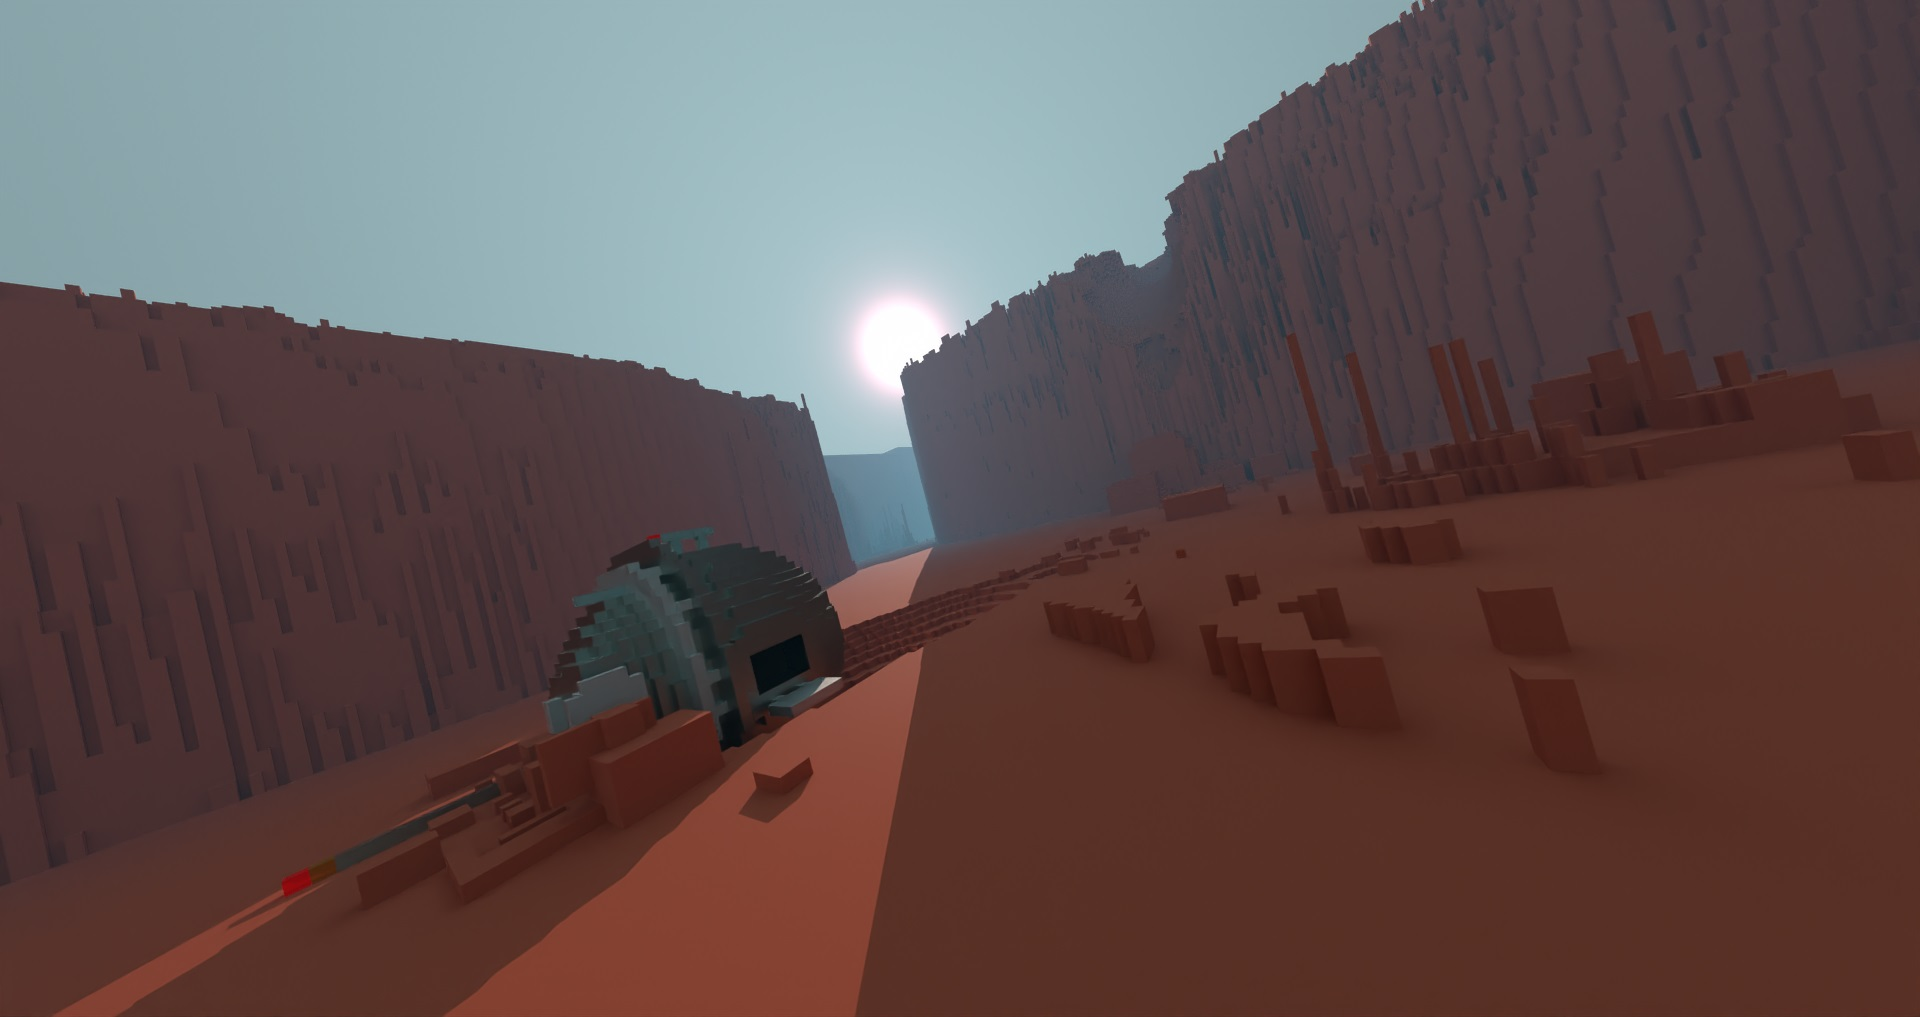 Crash Site, voxel art created and rendered in Avoyd by Rebecca Michalak